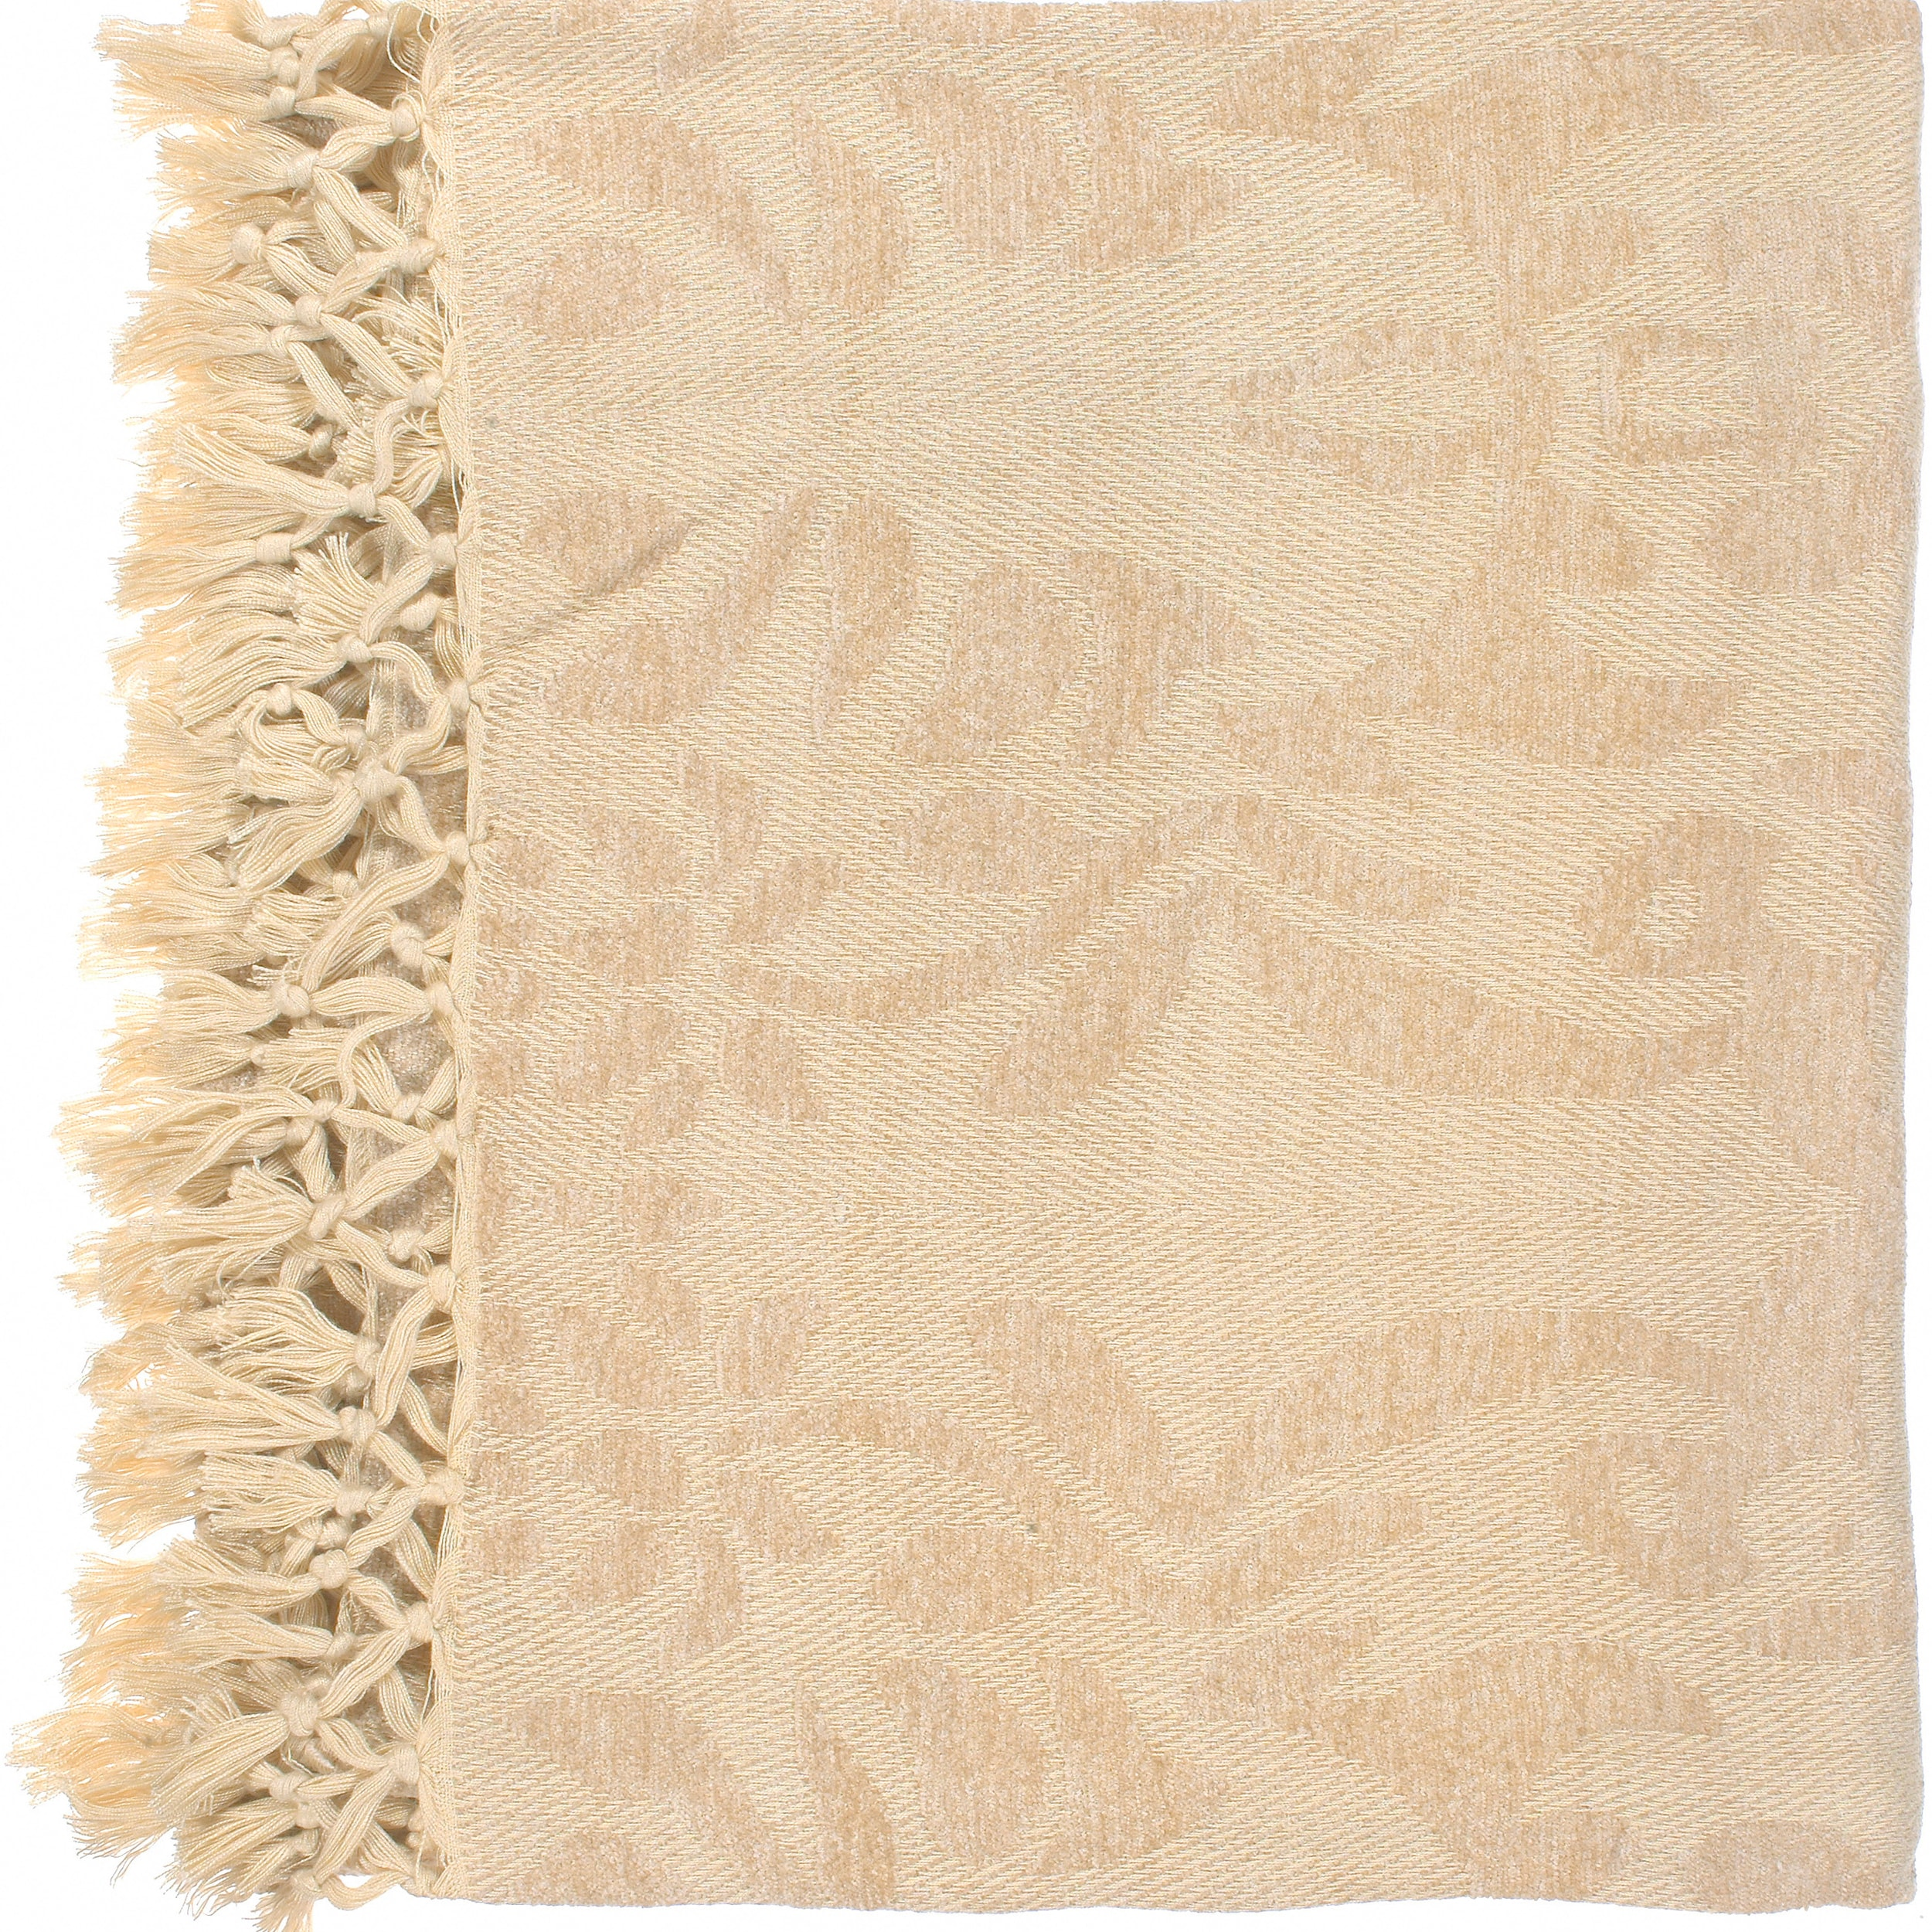 "Woven Urbana Viscose Throw Blanket (50"" x 70"")"